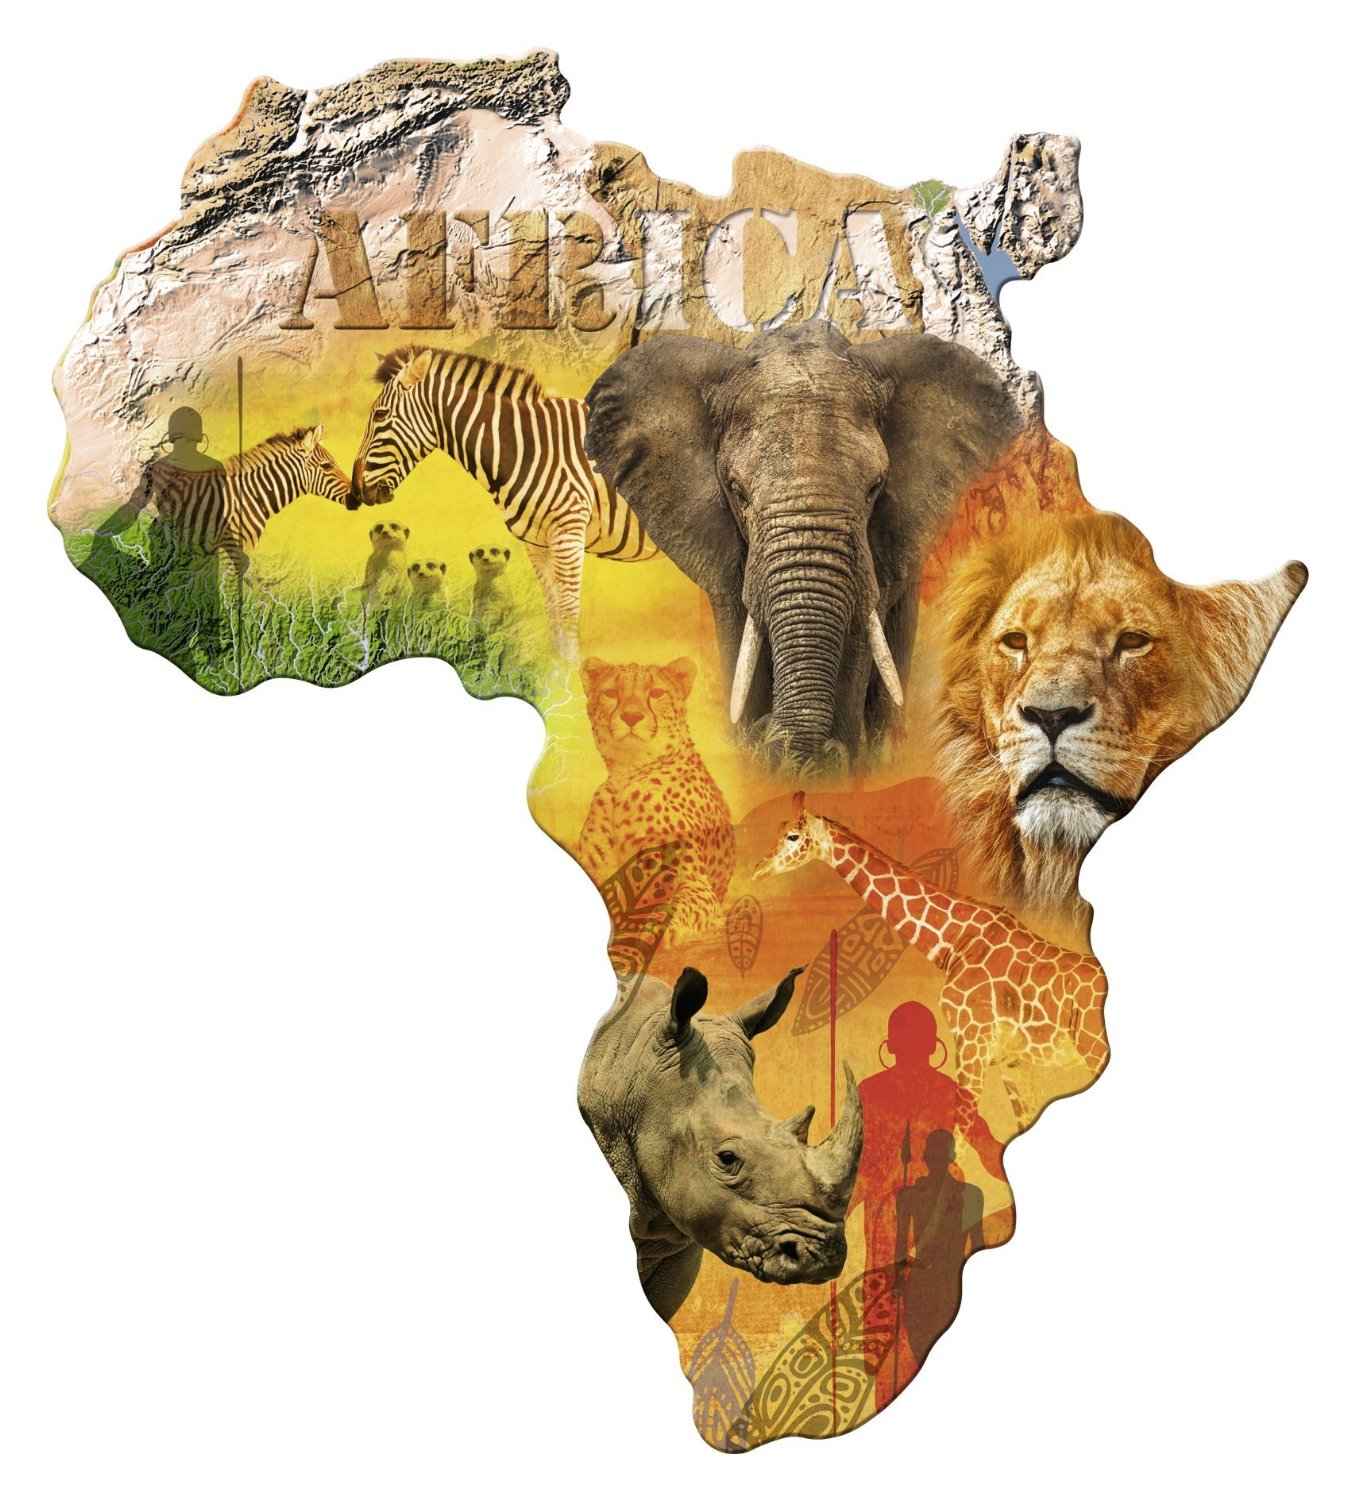 Africa map jigsaw puzzle 100 images africa jigsaw puzzle drag africa map jigsaw puzzle silhouette puzzle africa ravensburger 16157 1114 pieces jigsaw africa map jigsaw puzzle silhouette puzzle africa ravensburger gumiabroncs Image collections